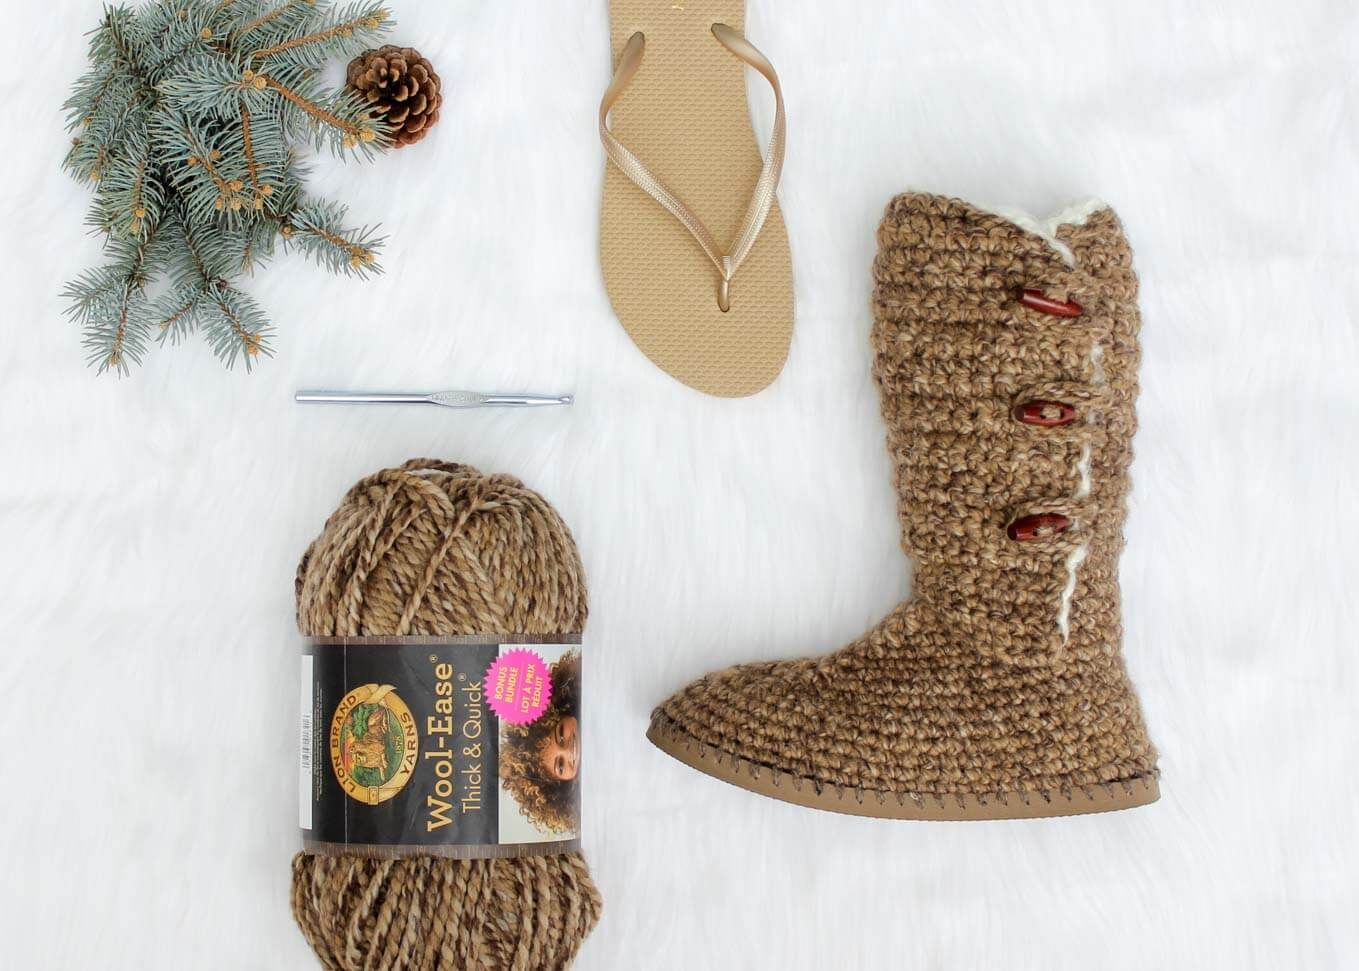 64160b256 Learn how to make UGG-style crochet boots with flip flop soles in Part 1 of  this free crochet pattern and video tutorial. Super comfy slippers or  outdoor ...